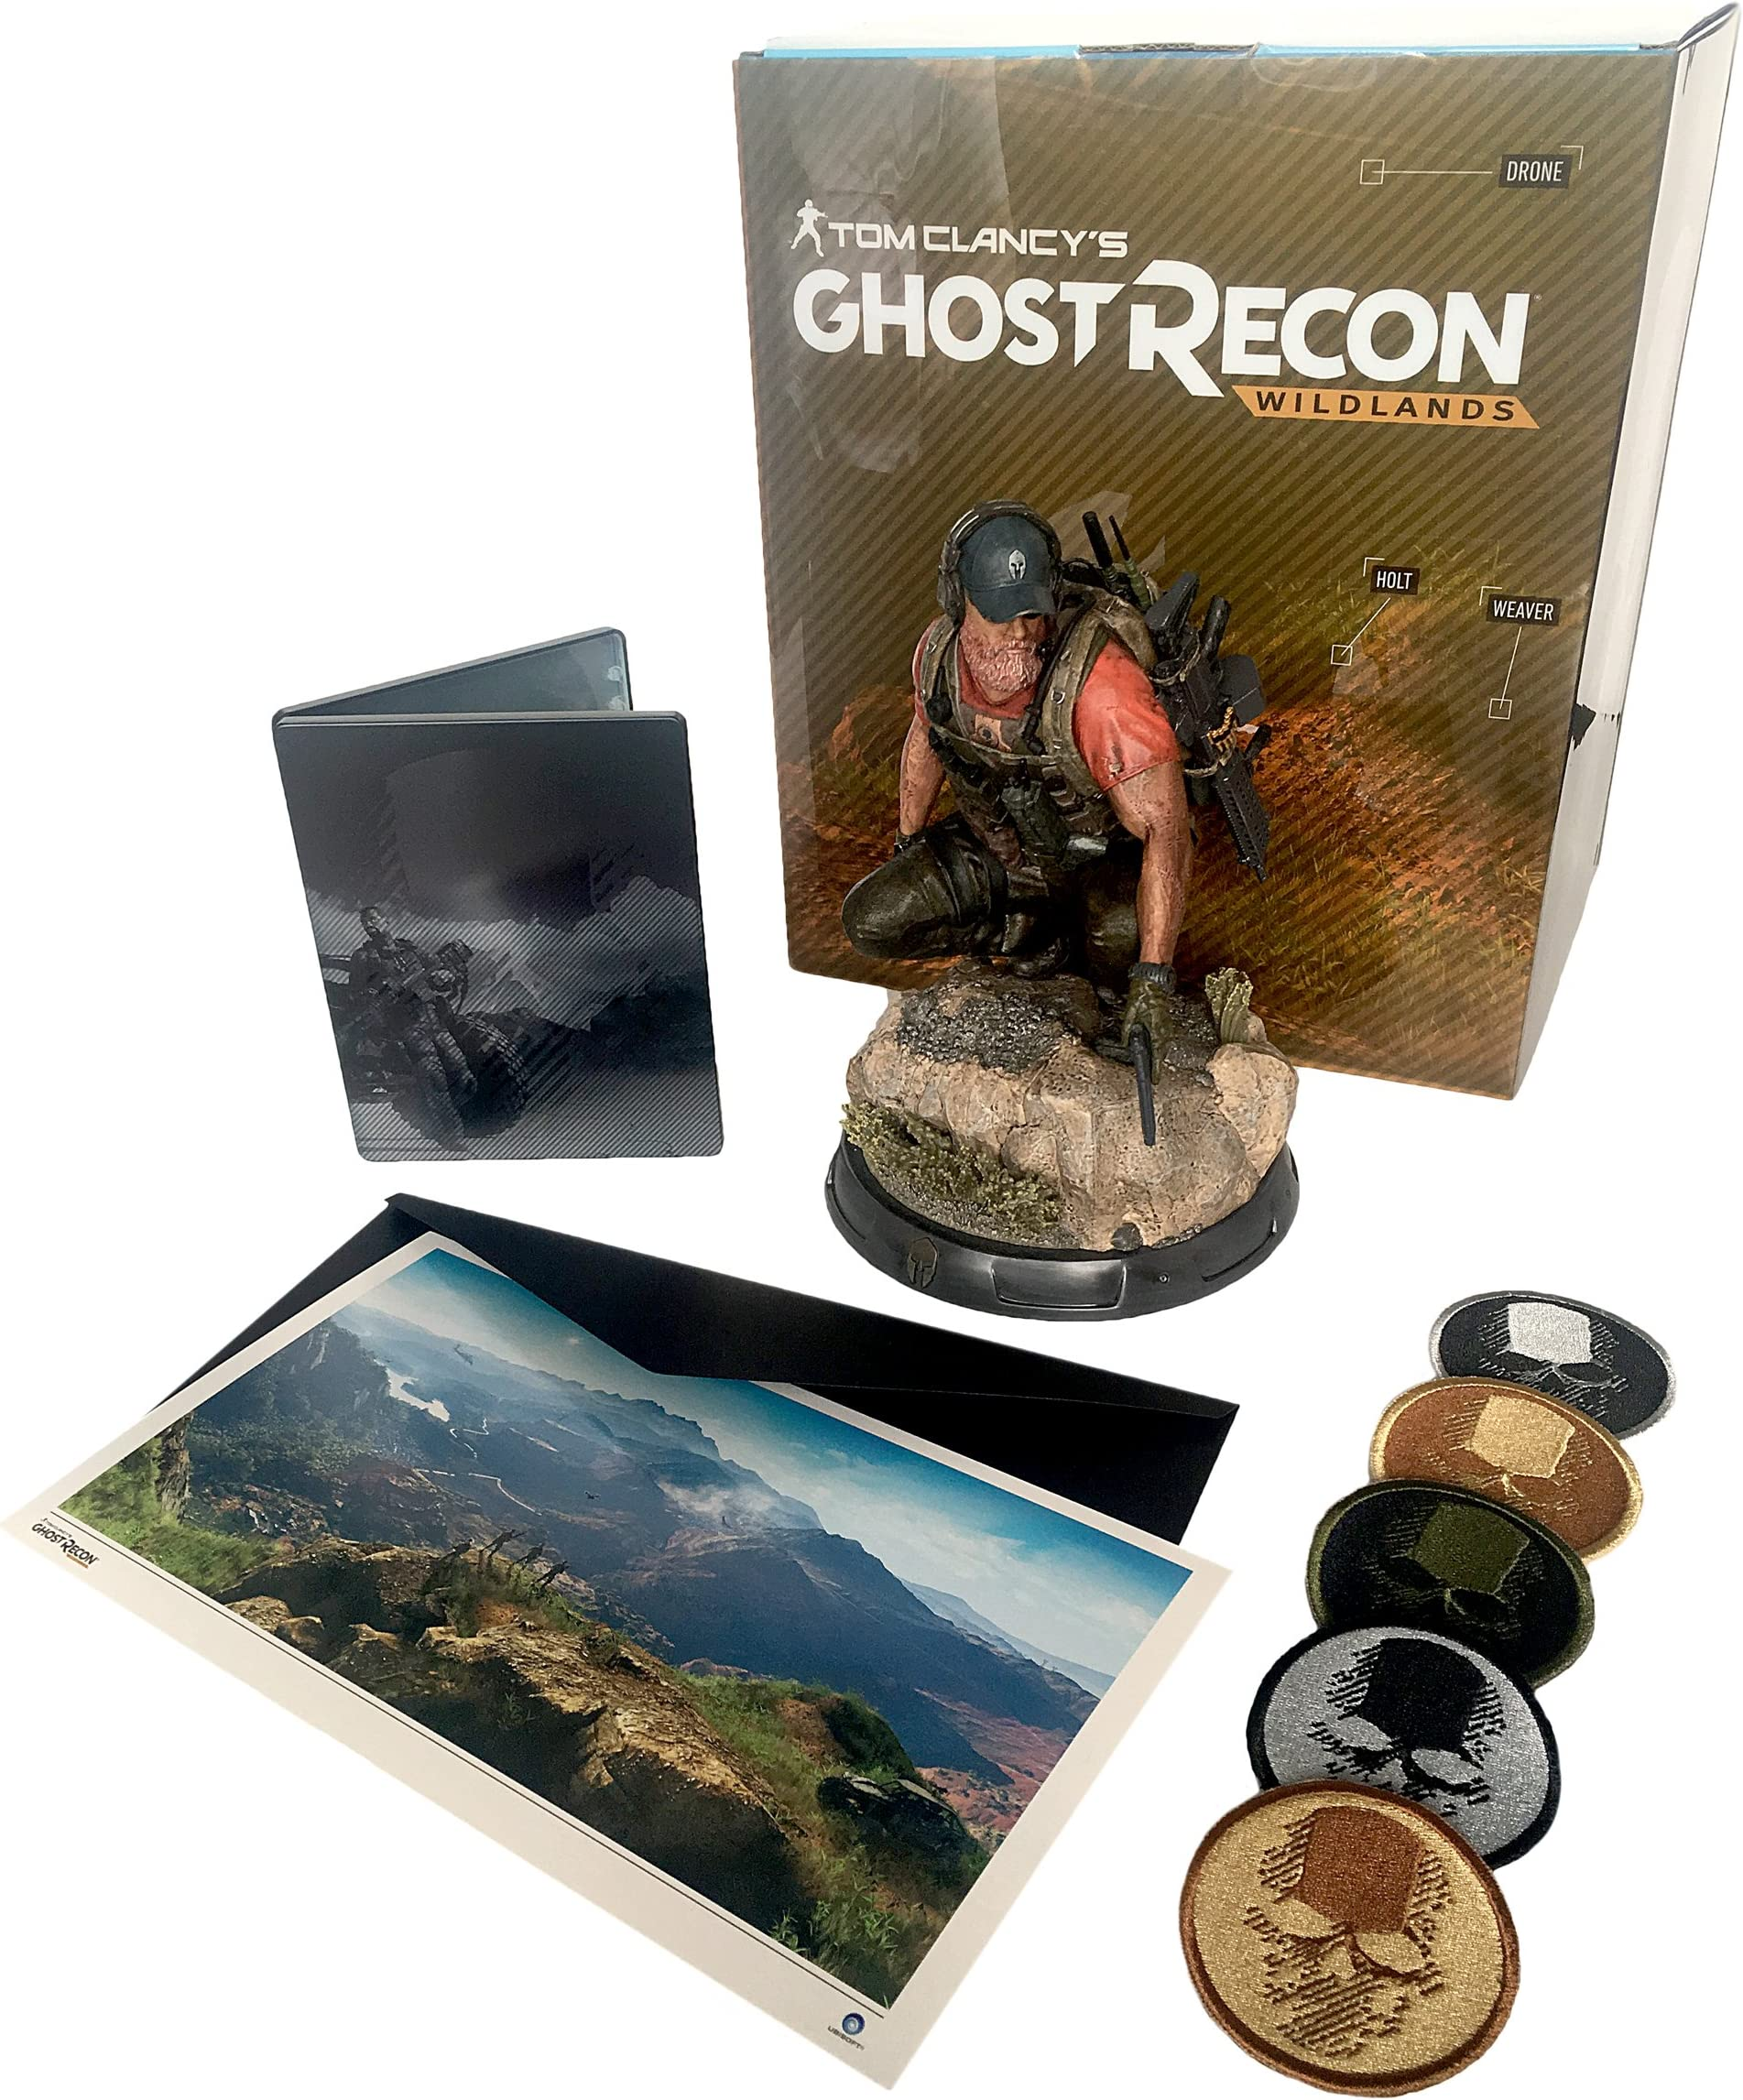 Amazon.com: Triforce Ghost Recon Wildlands Triforce Ghost ...